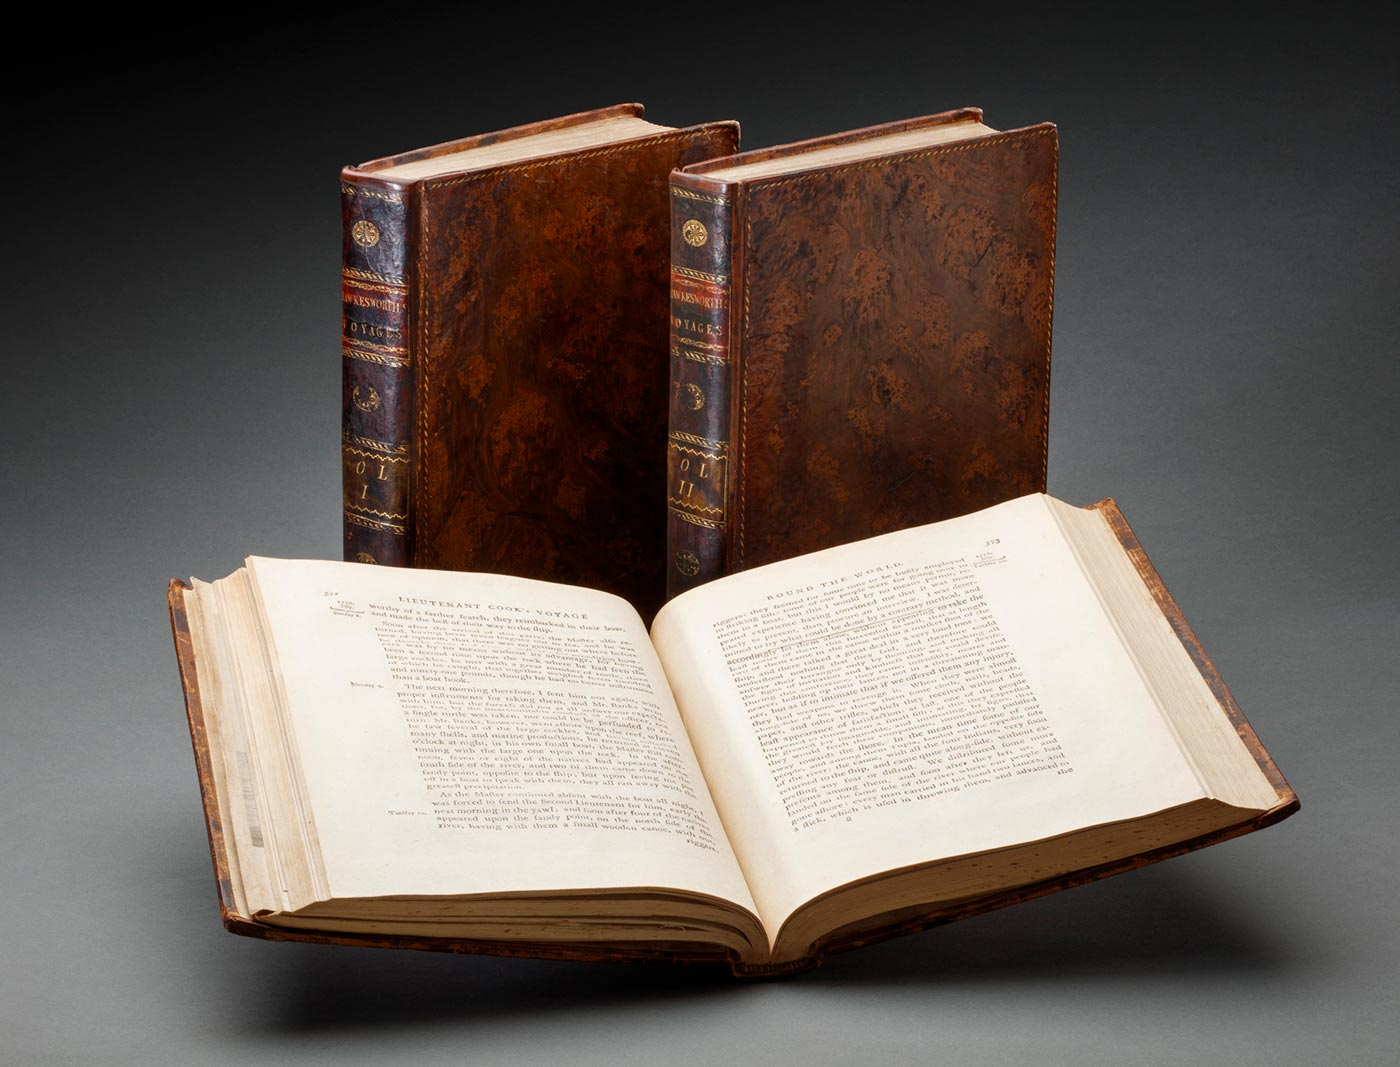 Three hardcover, leather bound volumes of a book. One is open about half way through. - click to view larger image